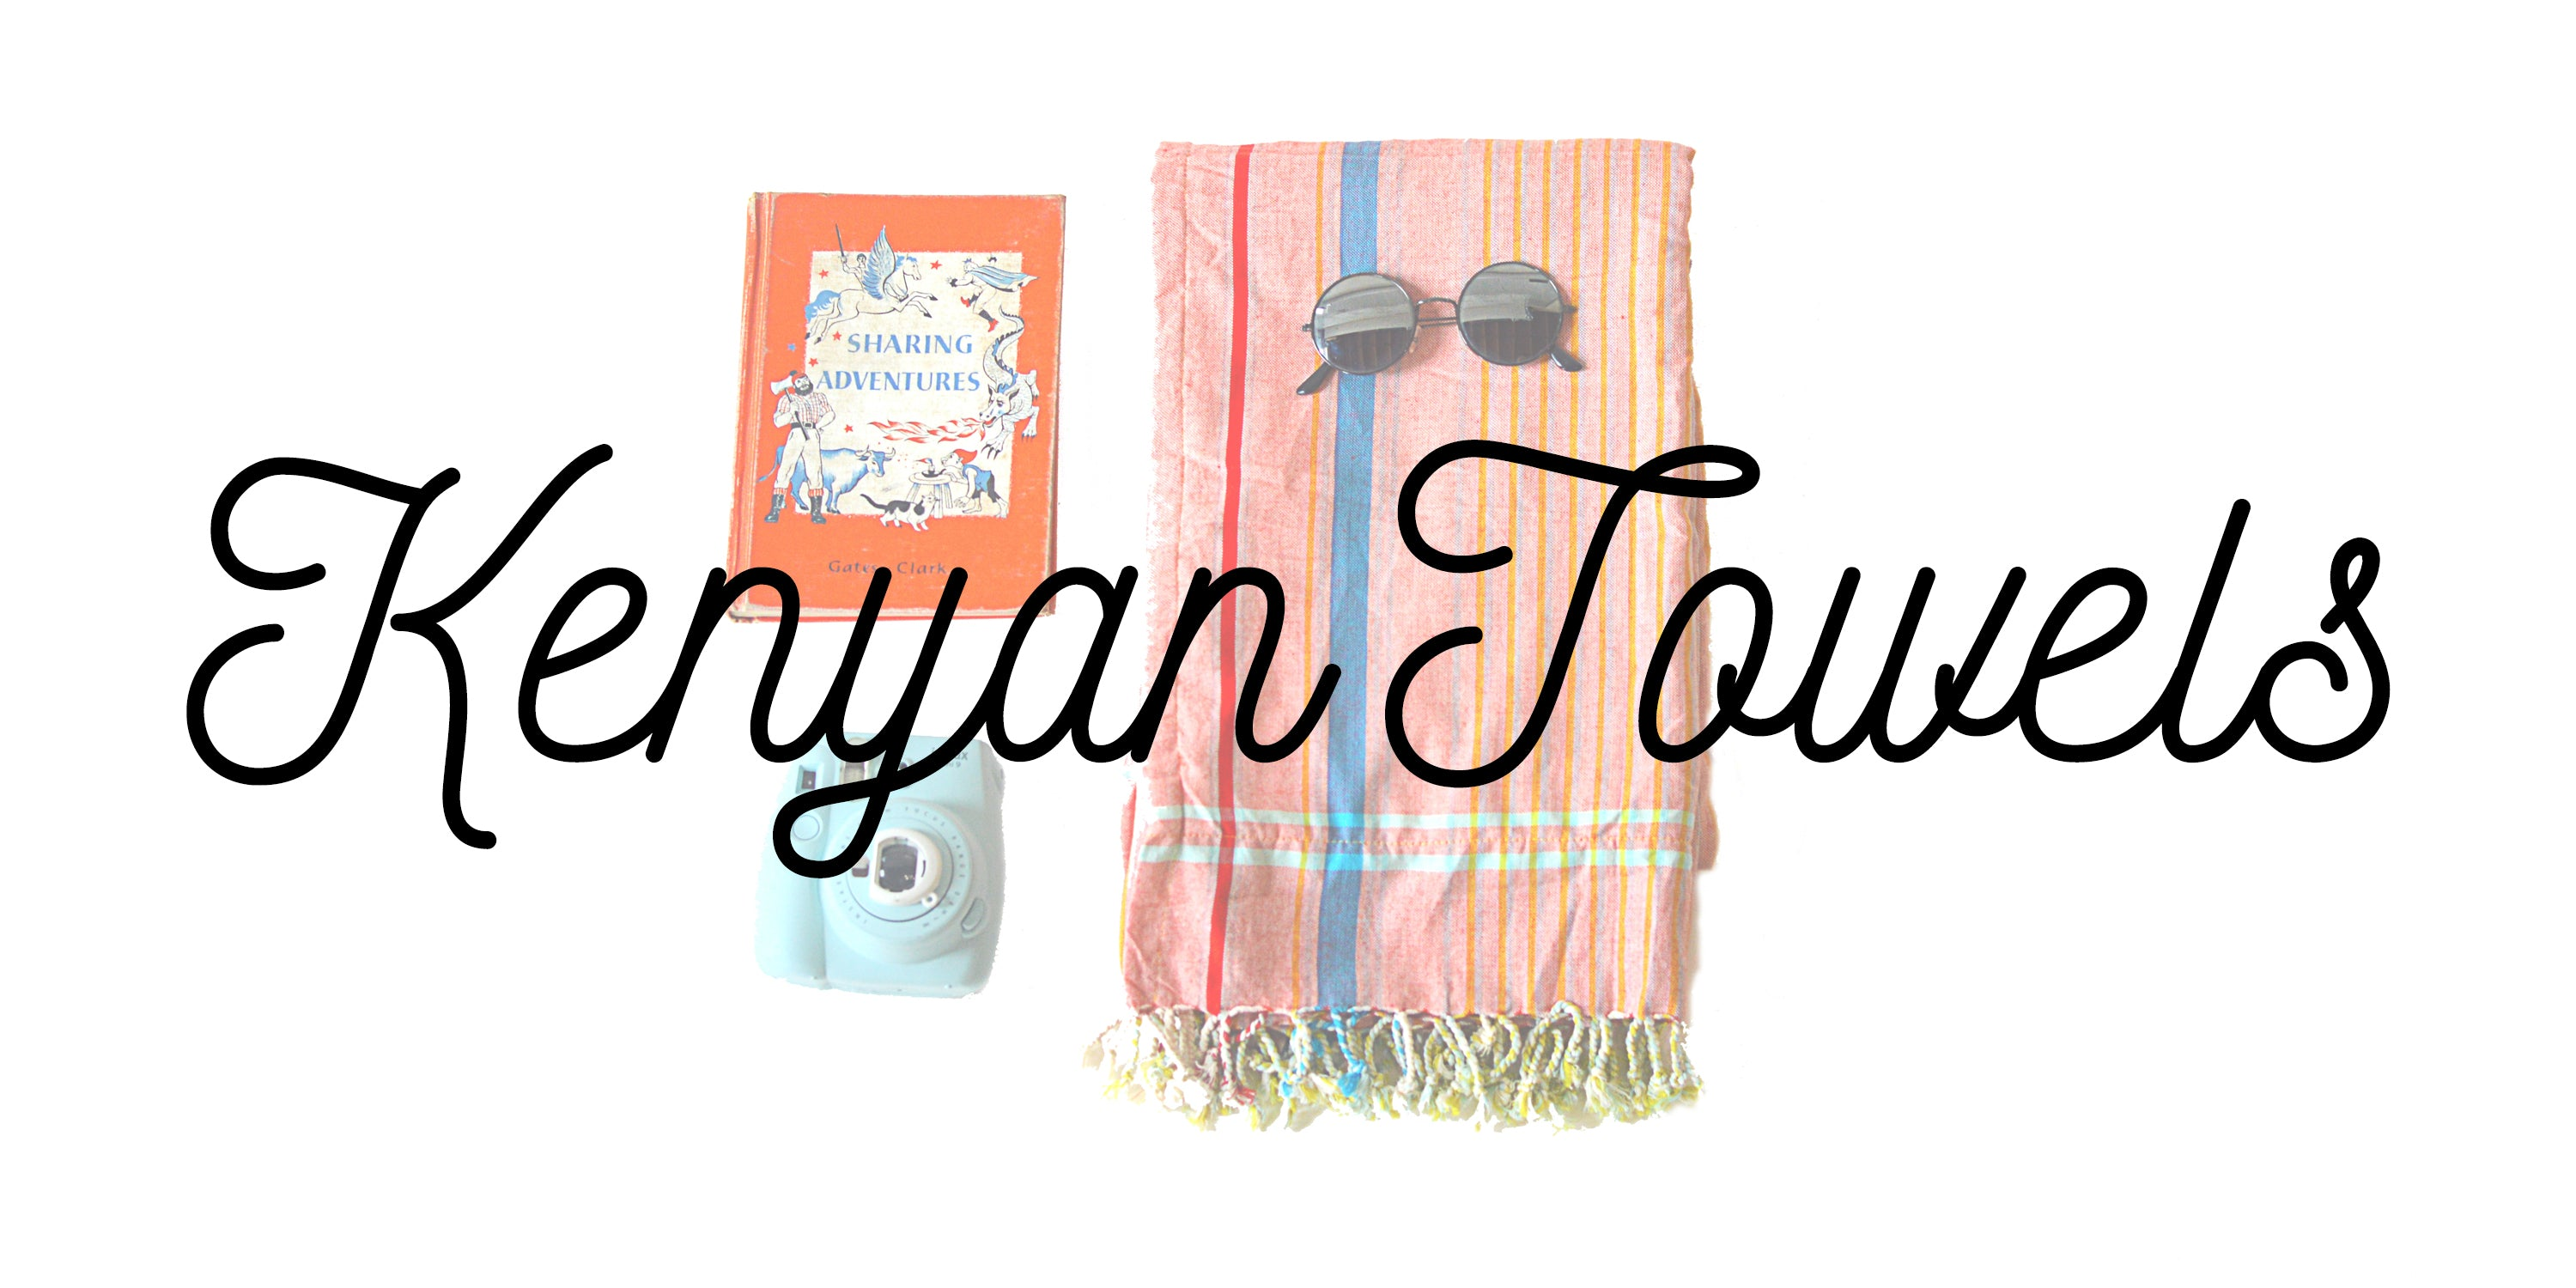 Kenyan Towels. Fair trade accessories ethically handmade by empowered artisans in East Africa.